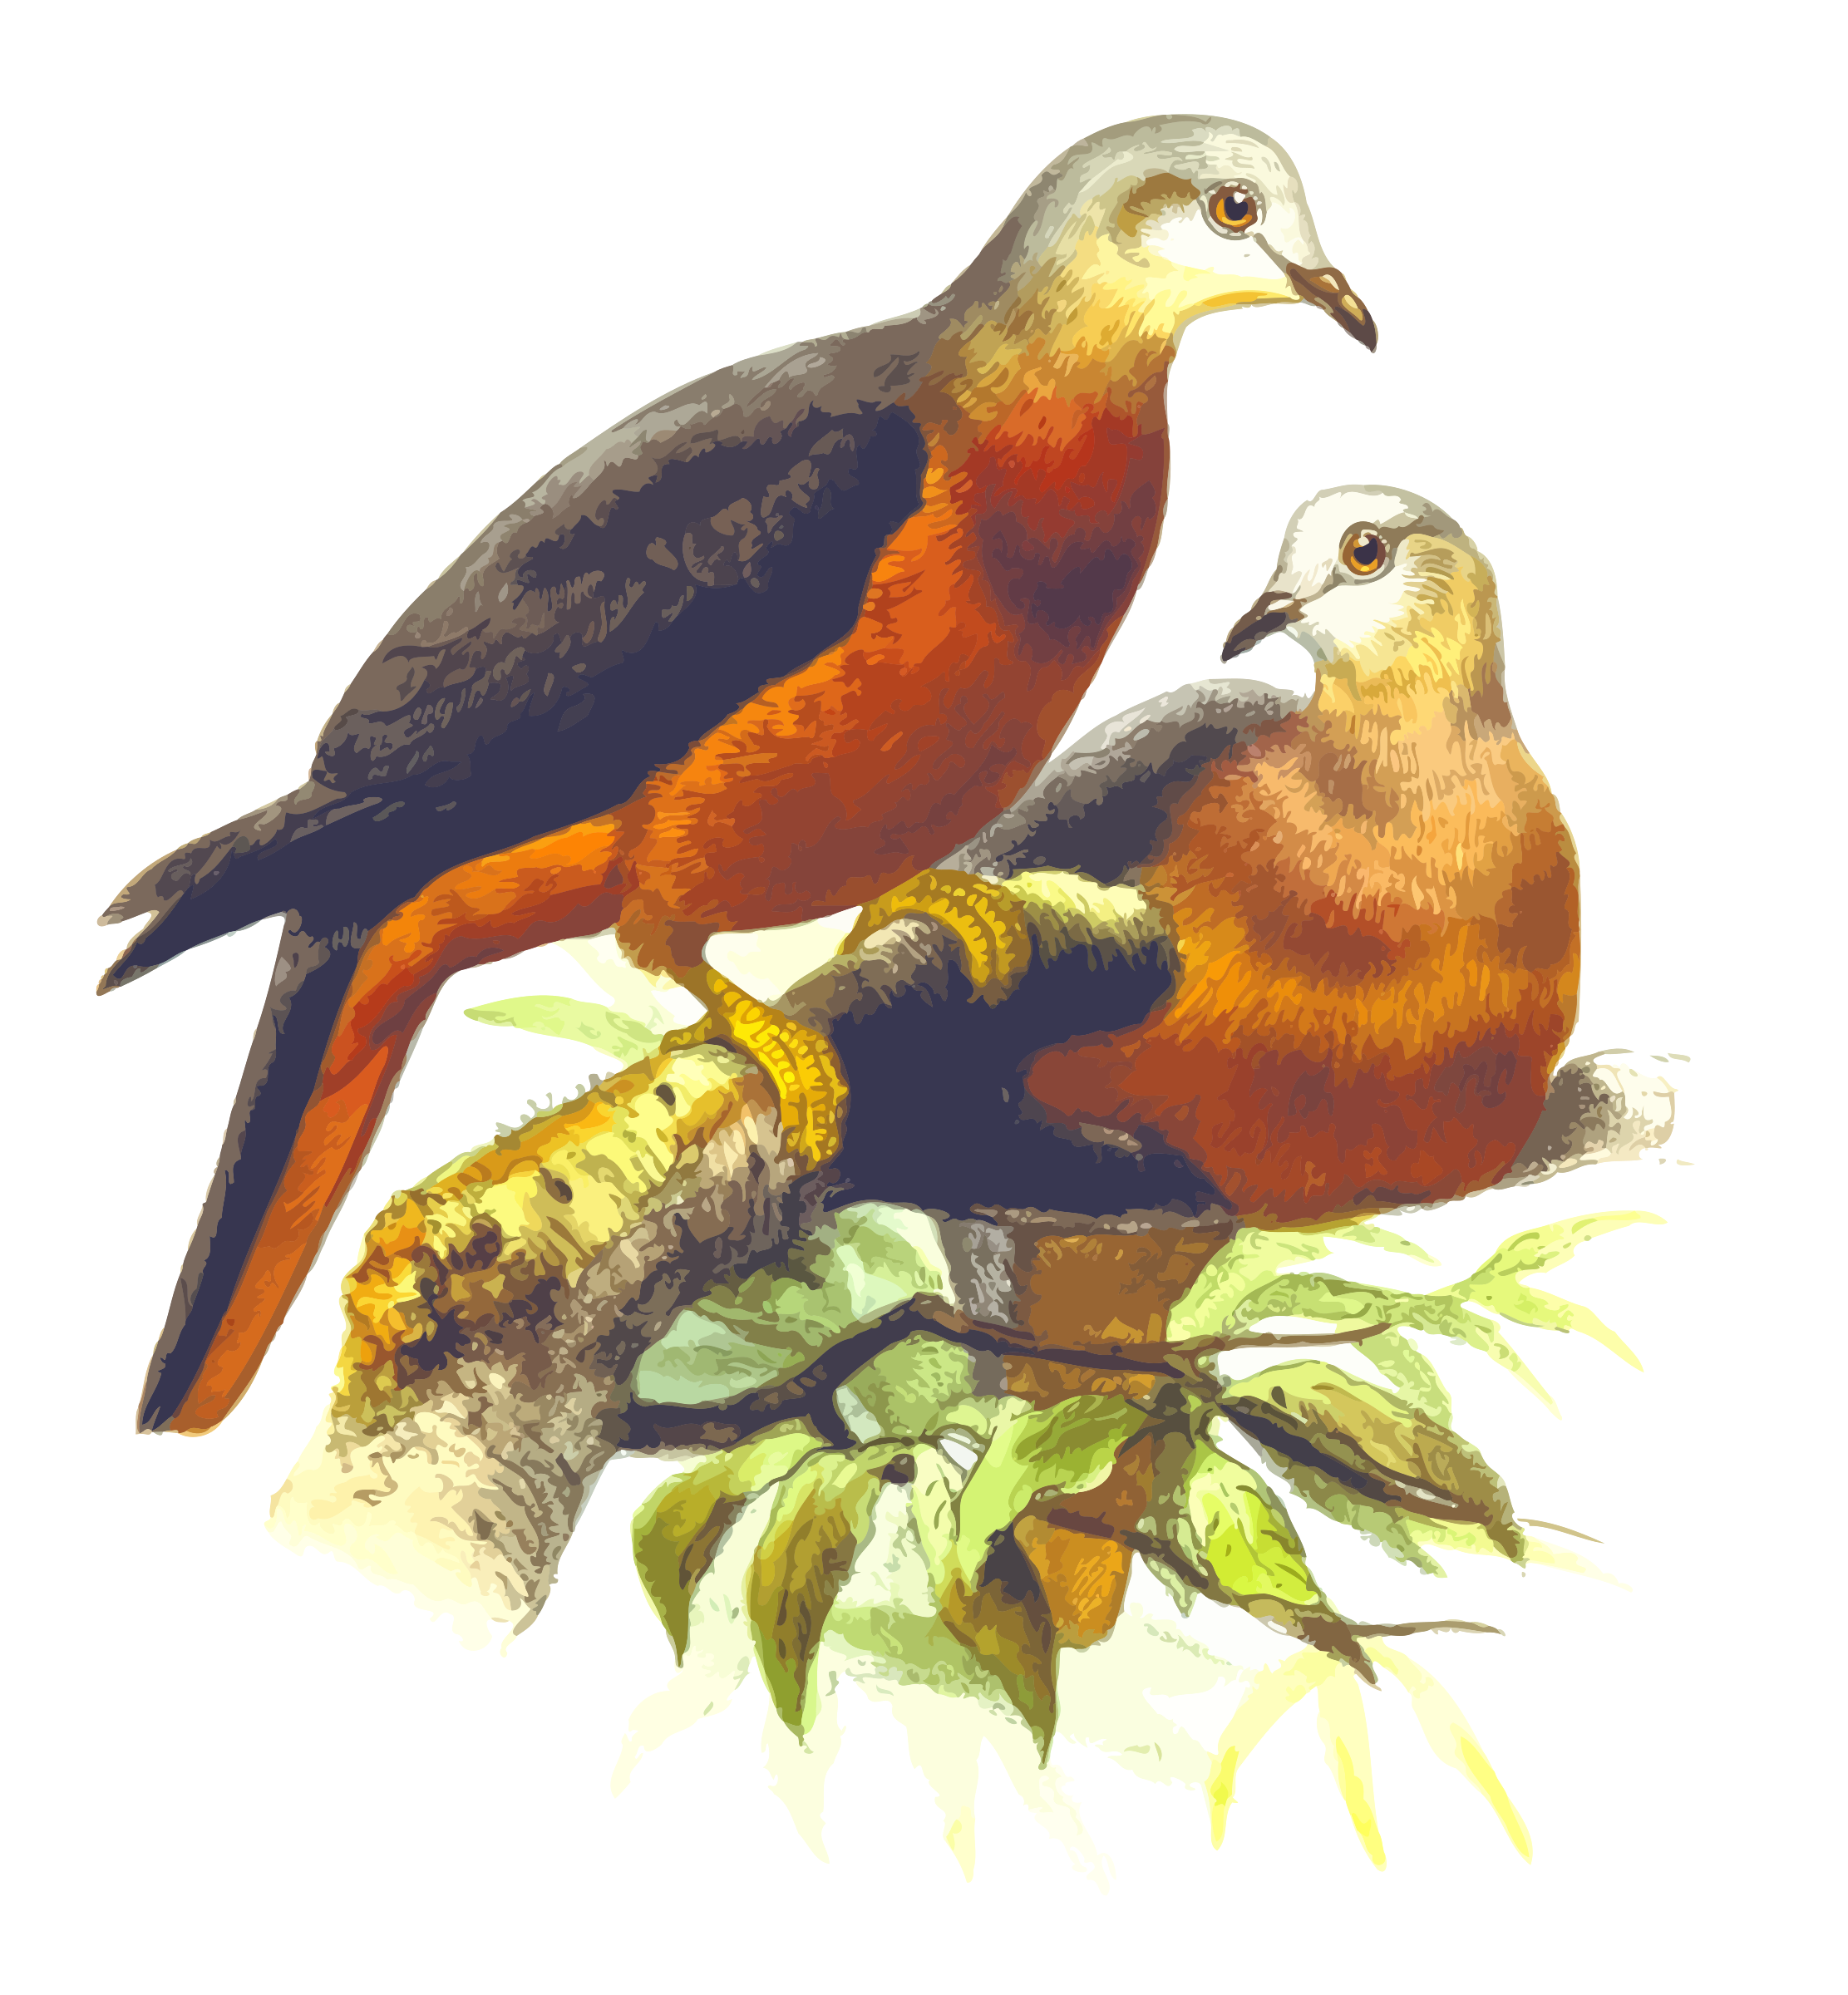 Chestnut-bellied imperial pigeon by Firkin